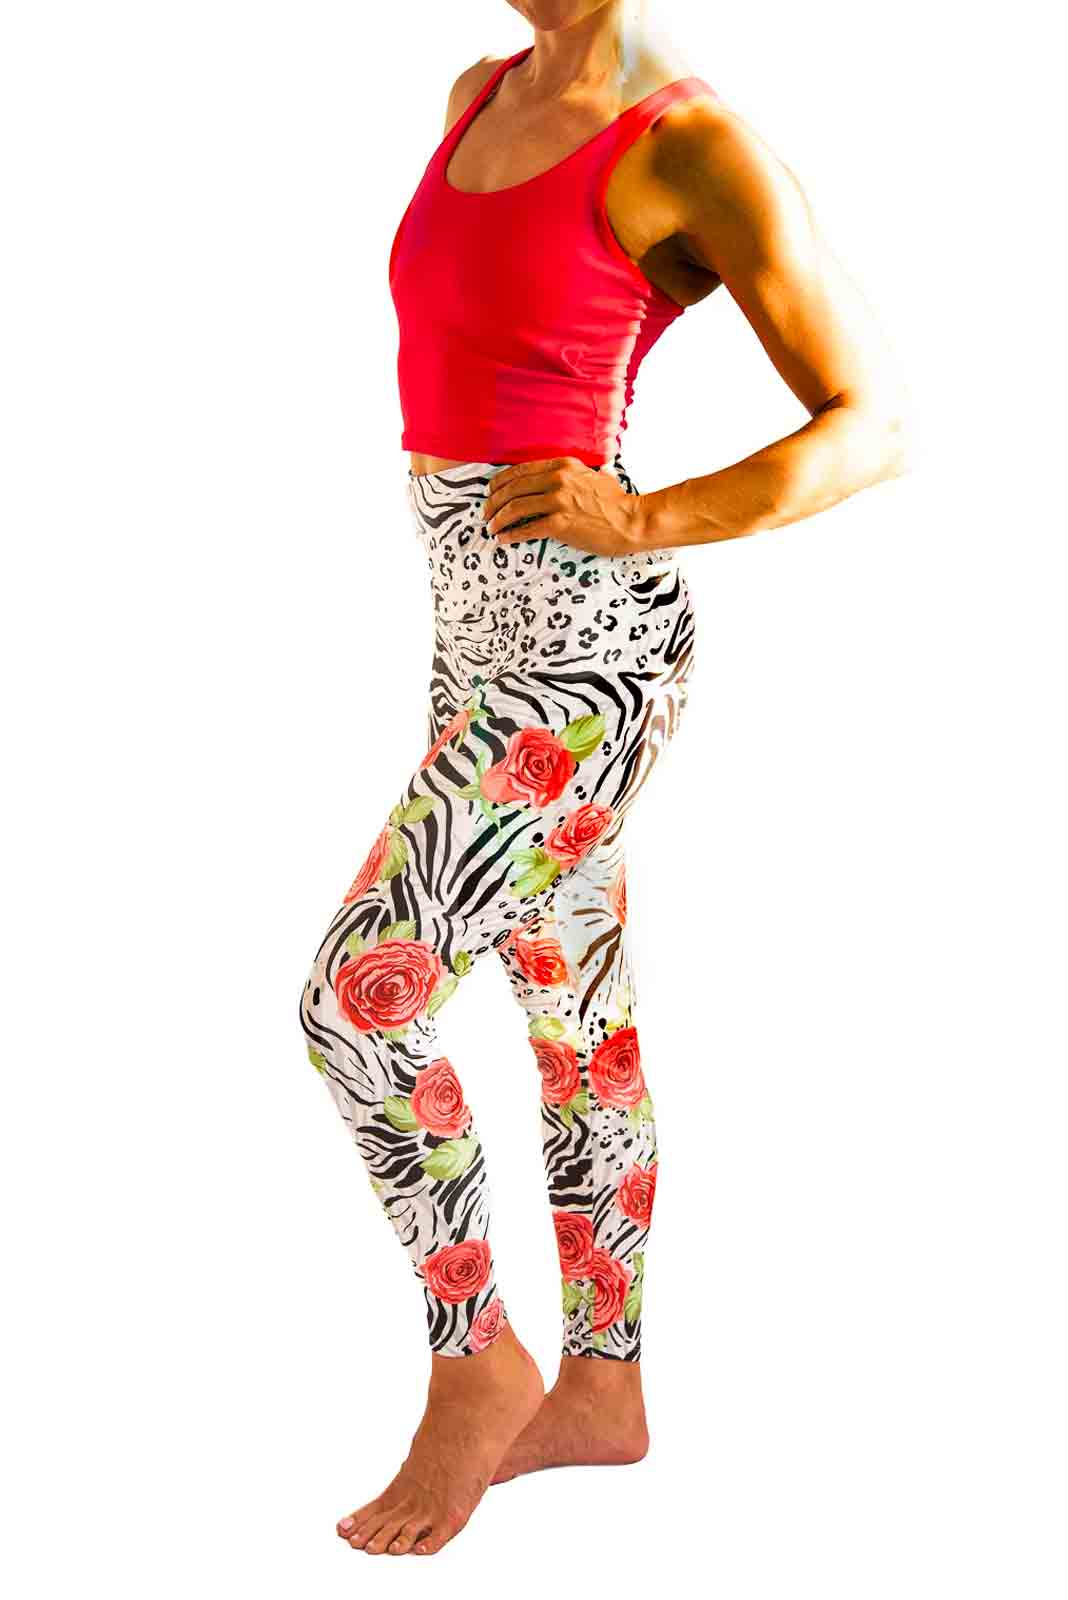 Tiger & Leopard Red Floral Yoga Pants